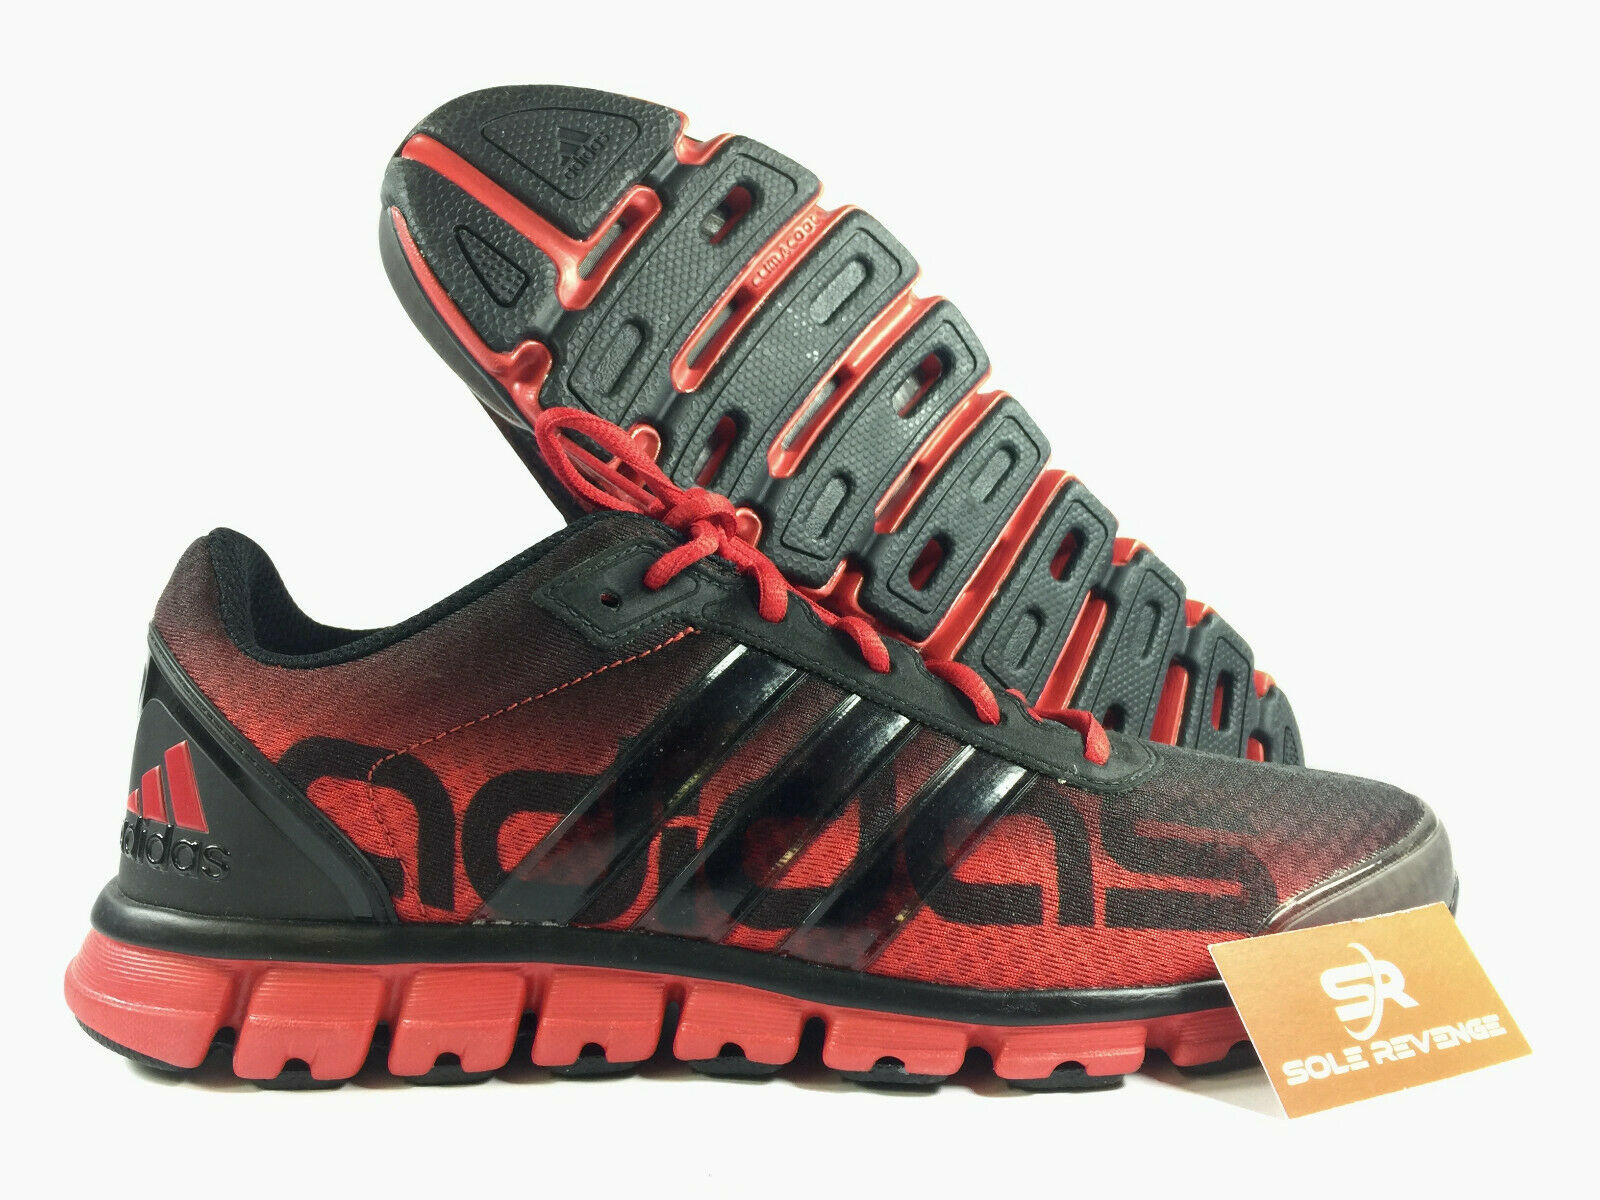 New Adidas Clima REGULATE Men's Running shoes Black Red G56601